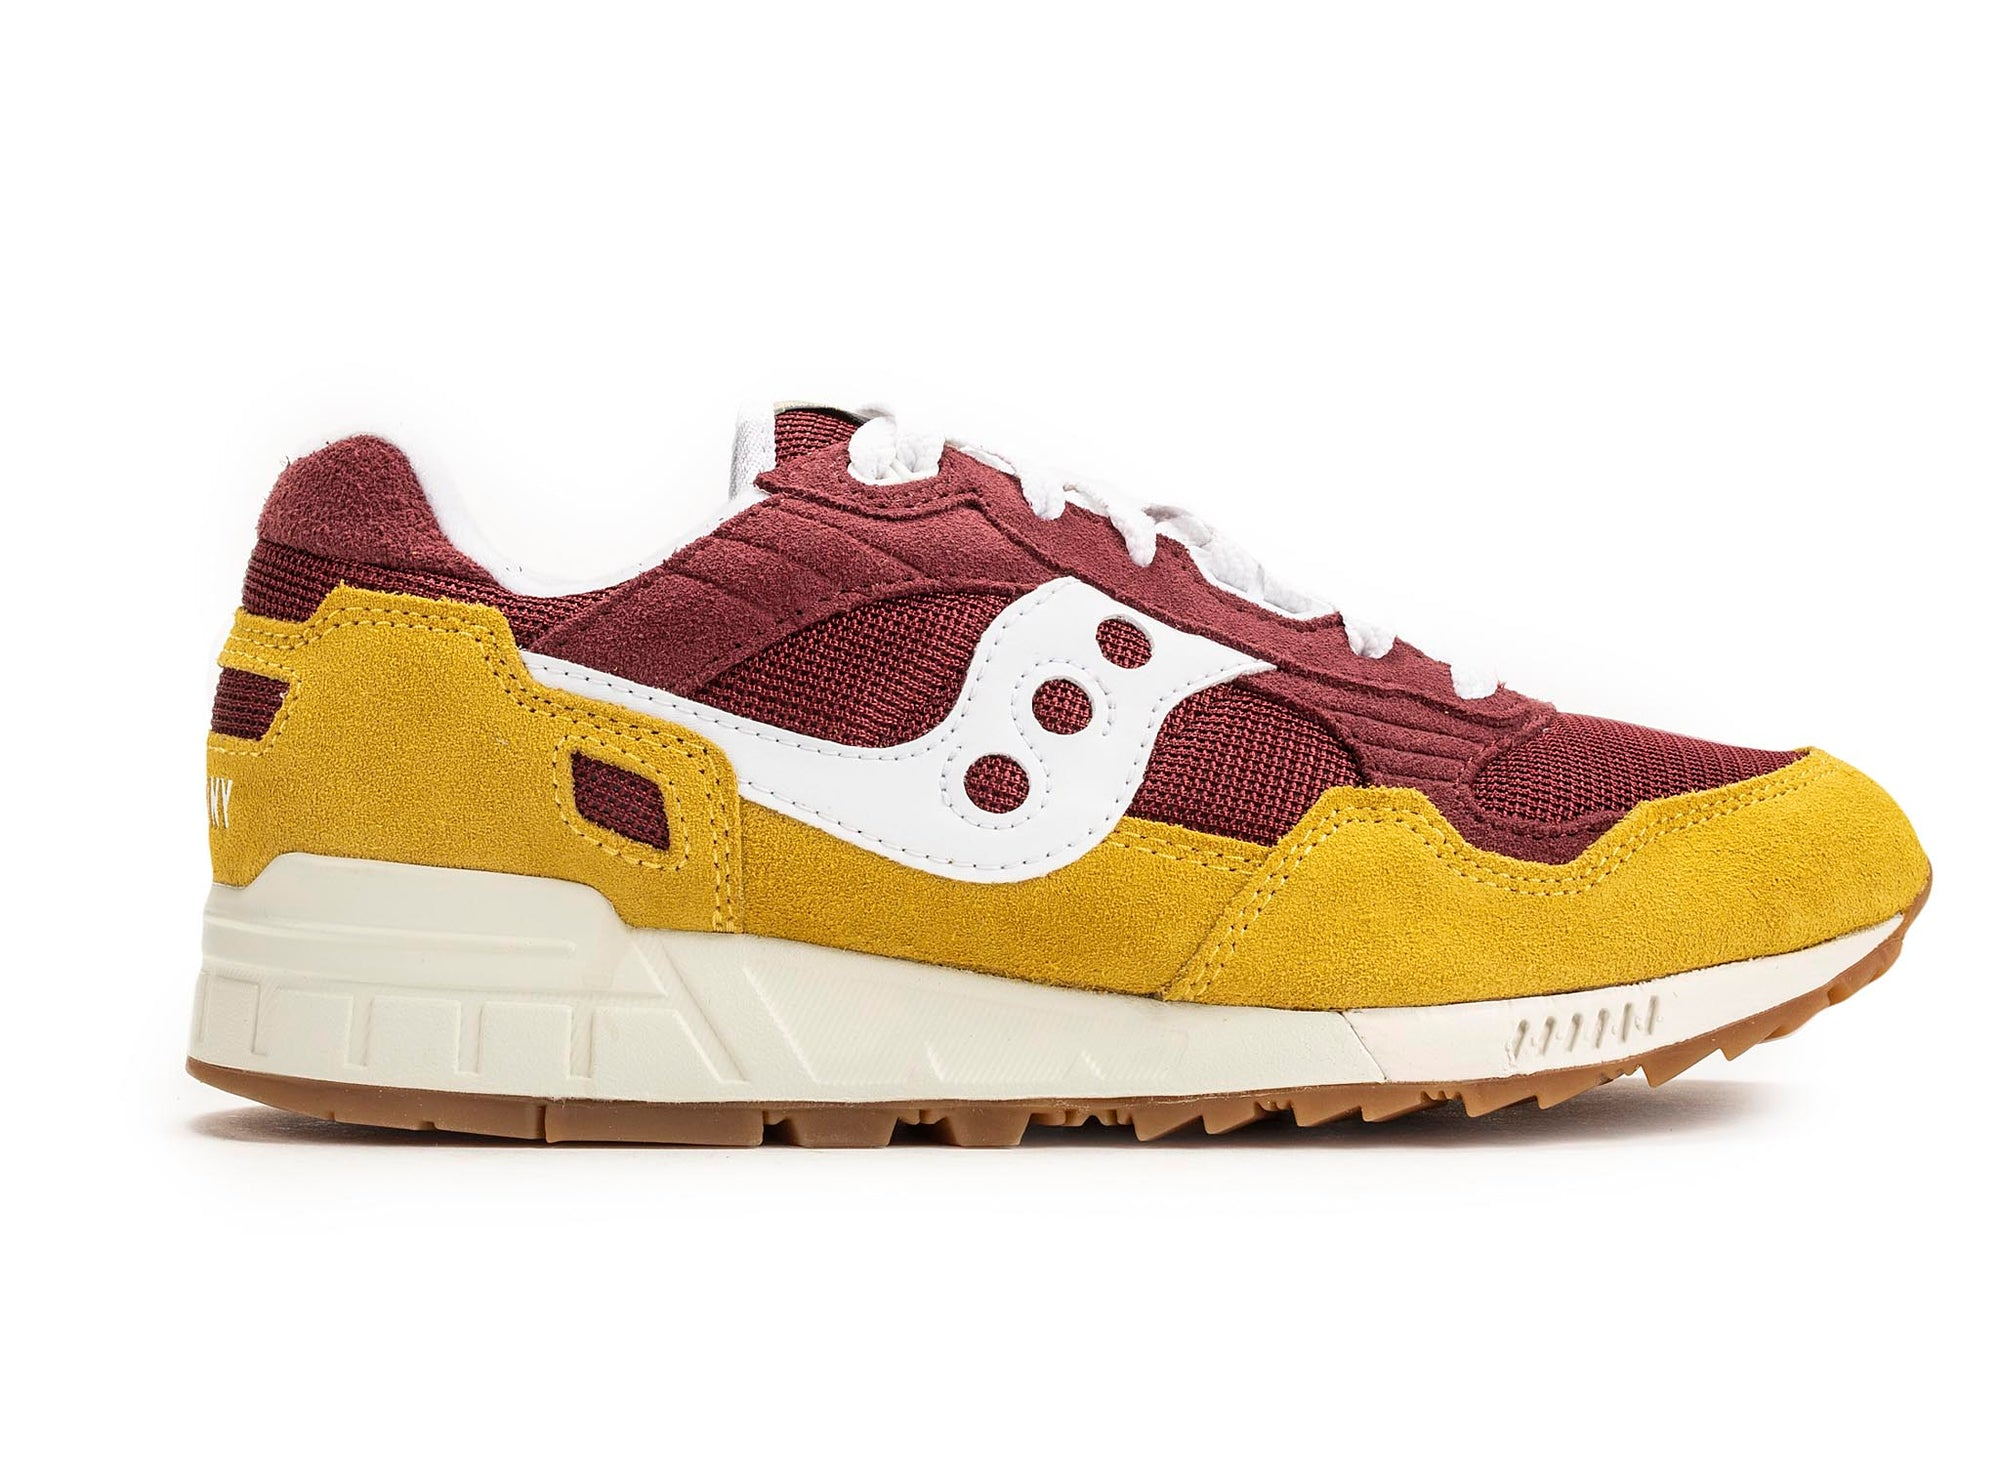 Saucony Shadow 5000 Vintage 'Yellow/Maroon'